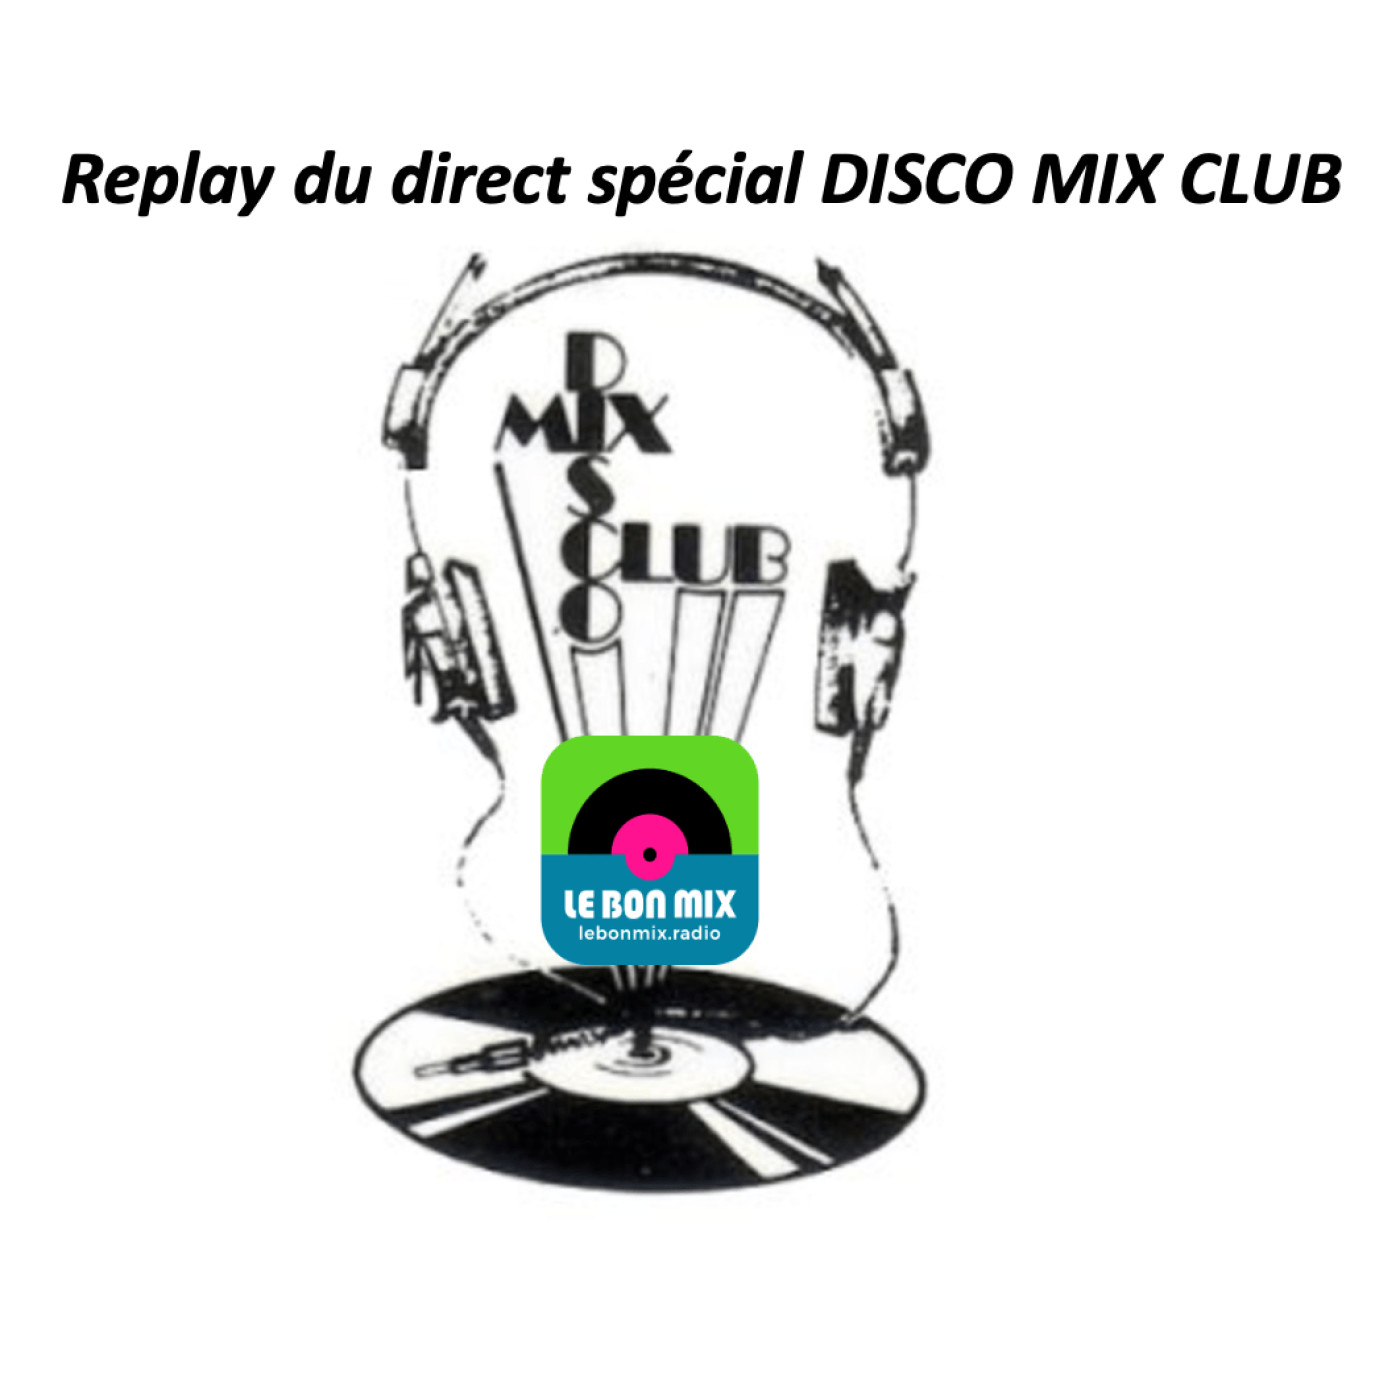 DISCO MIX CLUB - Direct du 04 01 21